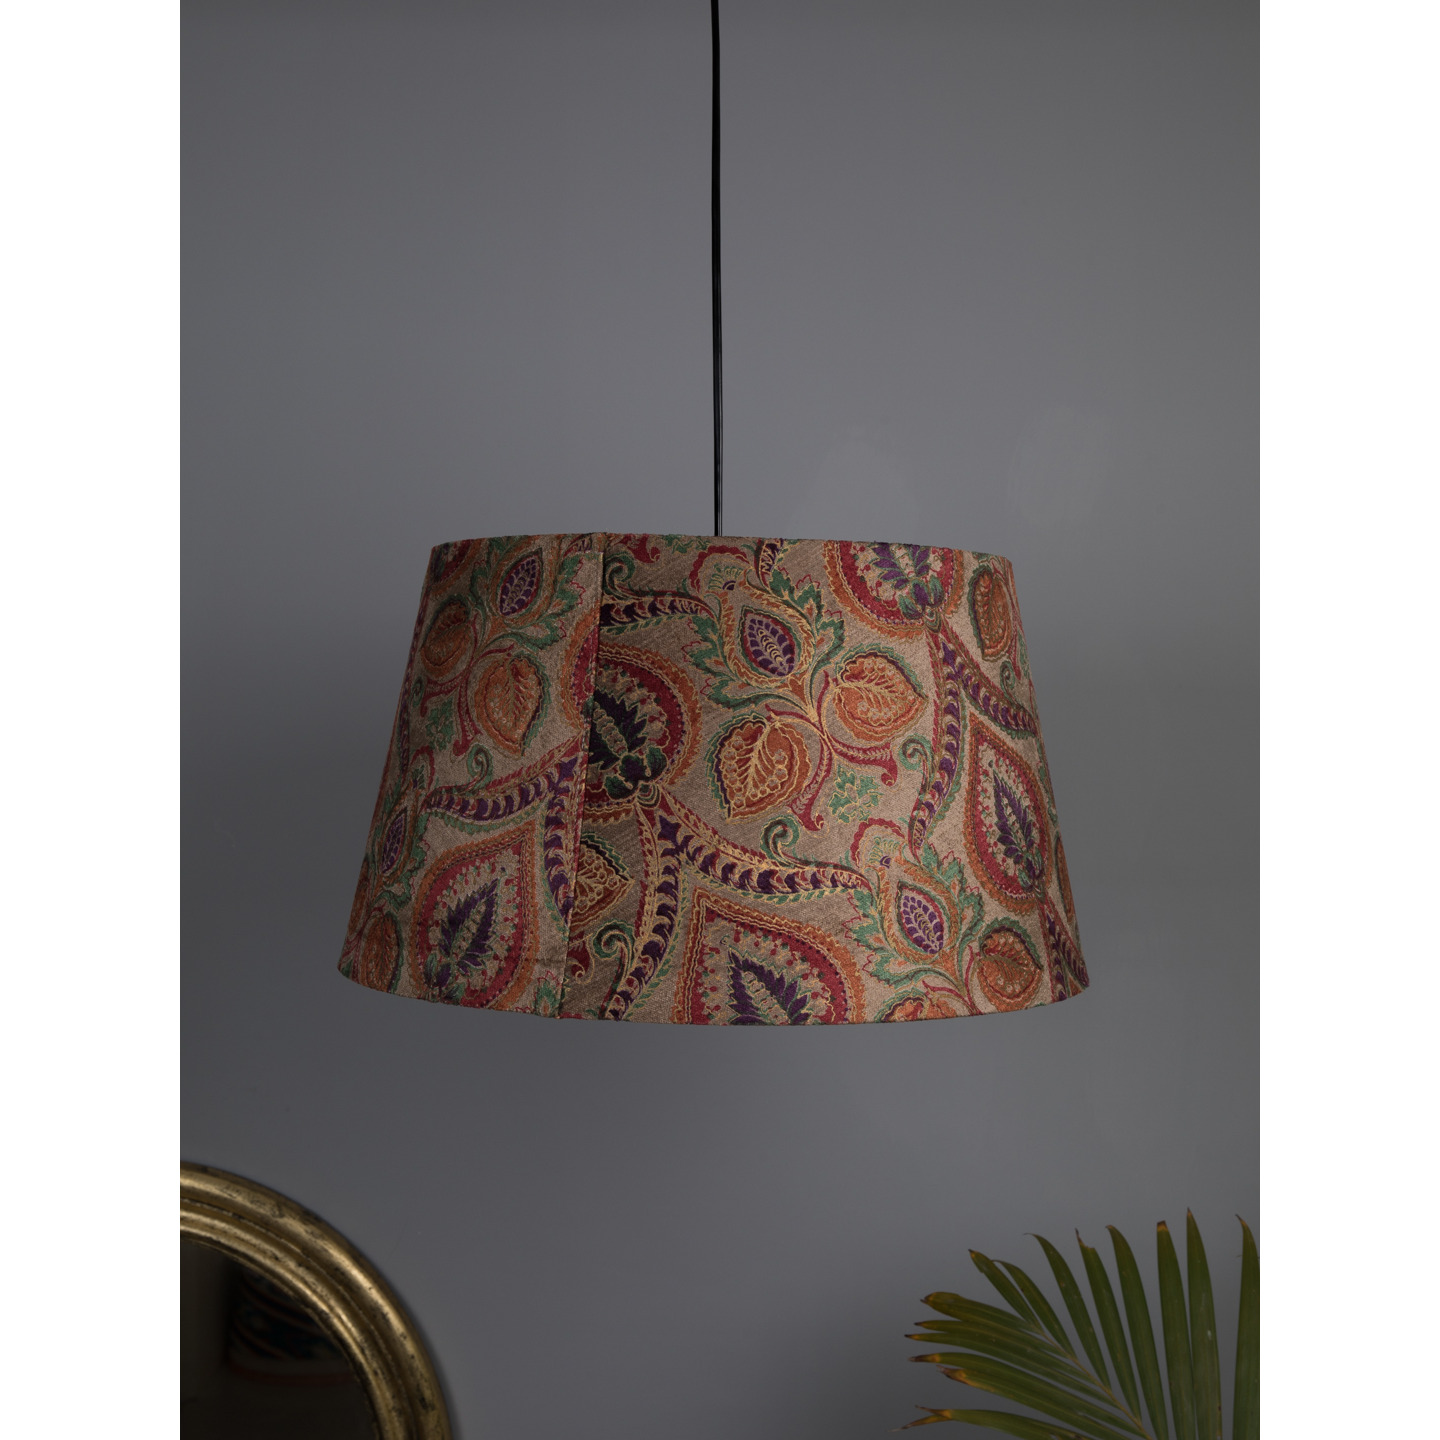 1 Pc Hanging Lamp Set Attached With A Bulb Holder & Adjustable Cord(Multicolor)